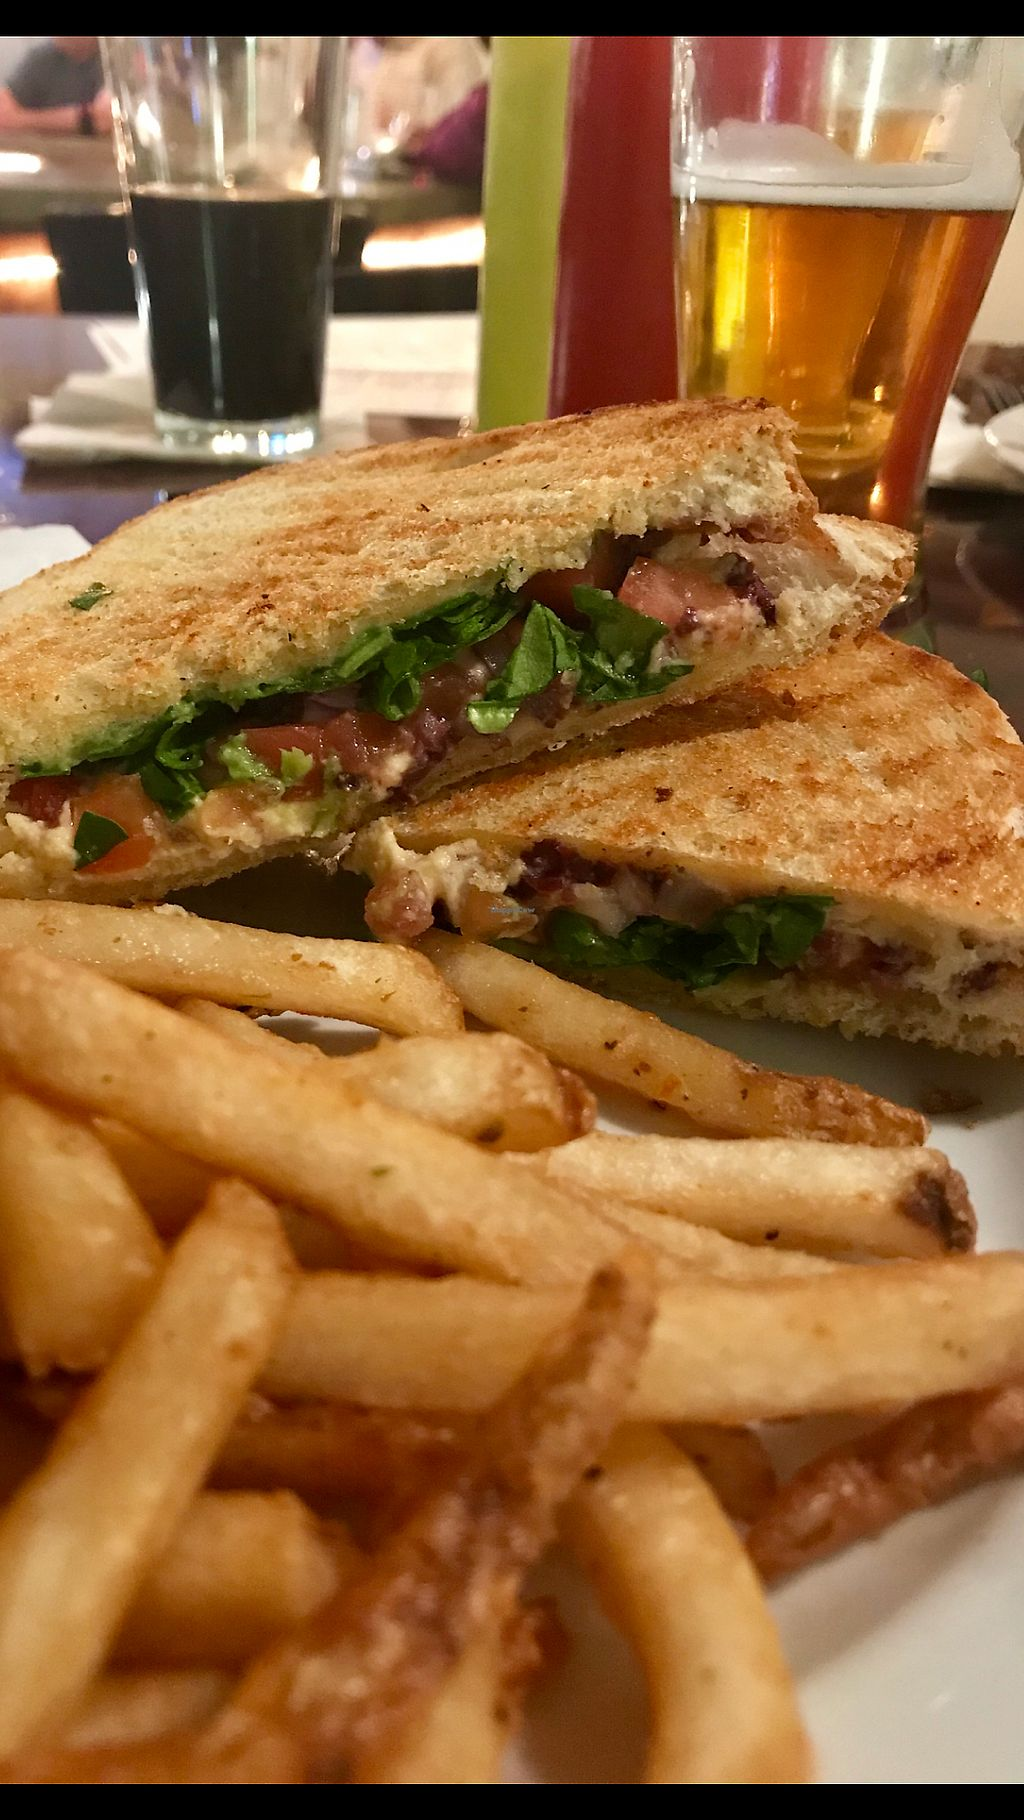 """Photo of Northern Oak Brewery  by <a href=""""/members/profile/Yojacq"""">Yojacq</a> <br/>Vegan Panini ? <br/> April 21, 2018  - <a href='/contact/abuse/image/117063/389187'>Report</a>"""